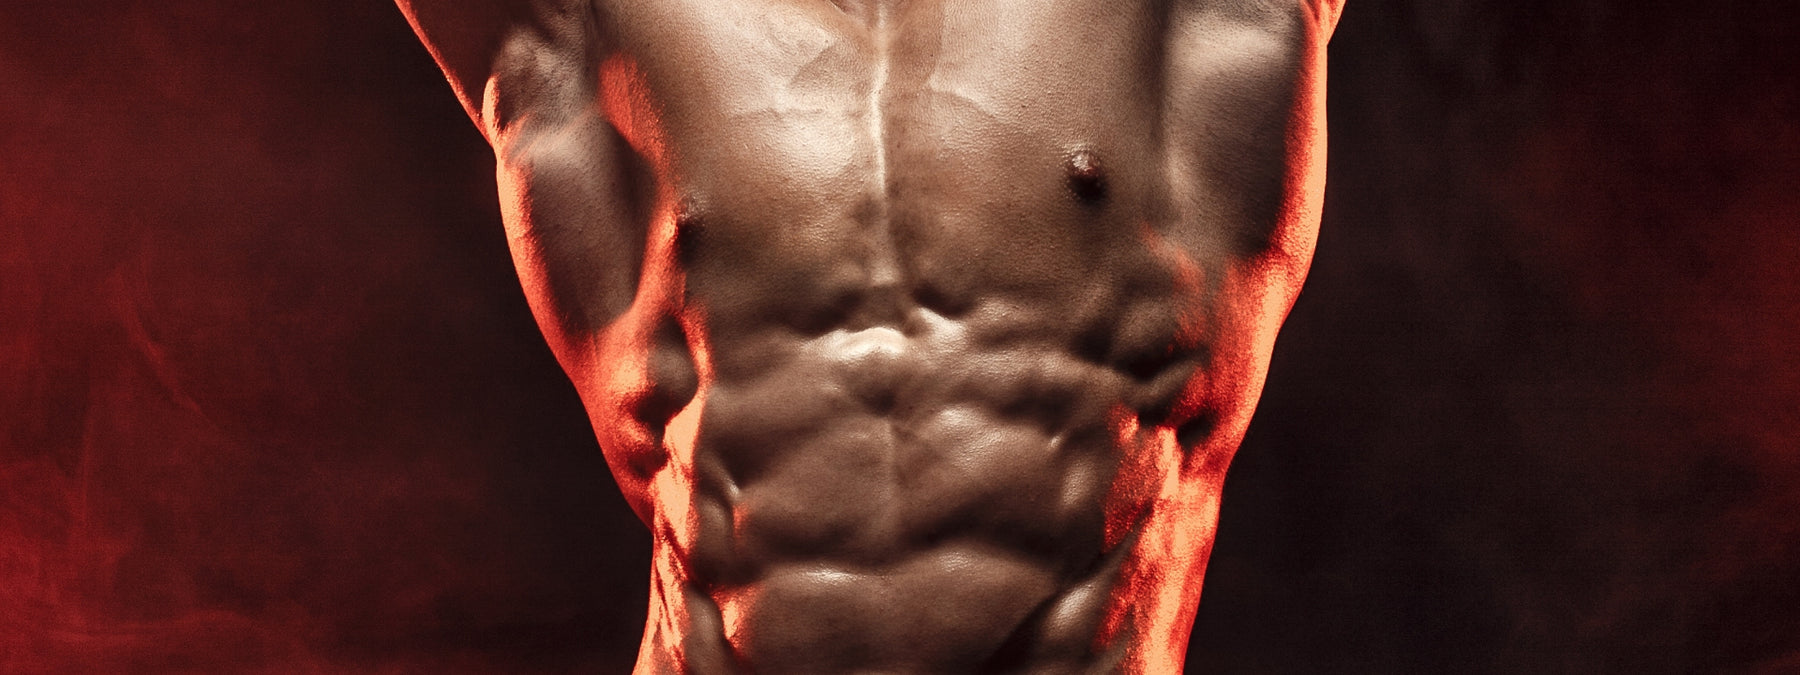 How to Get Shredded By Summer